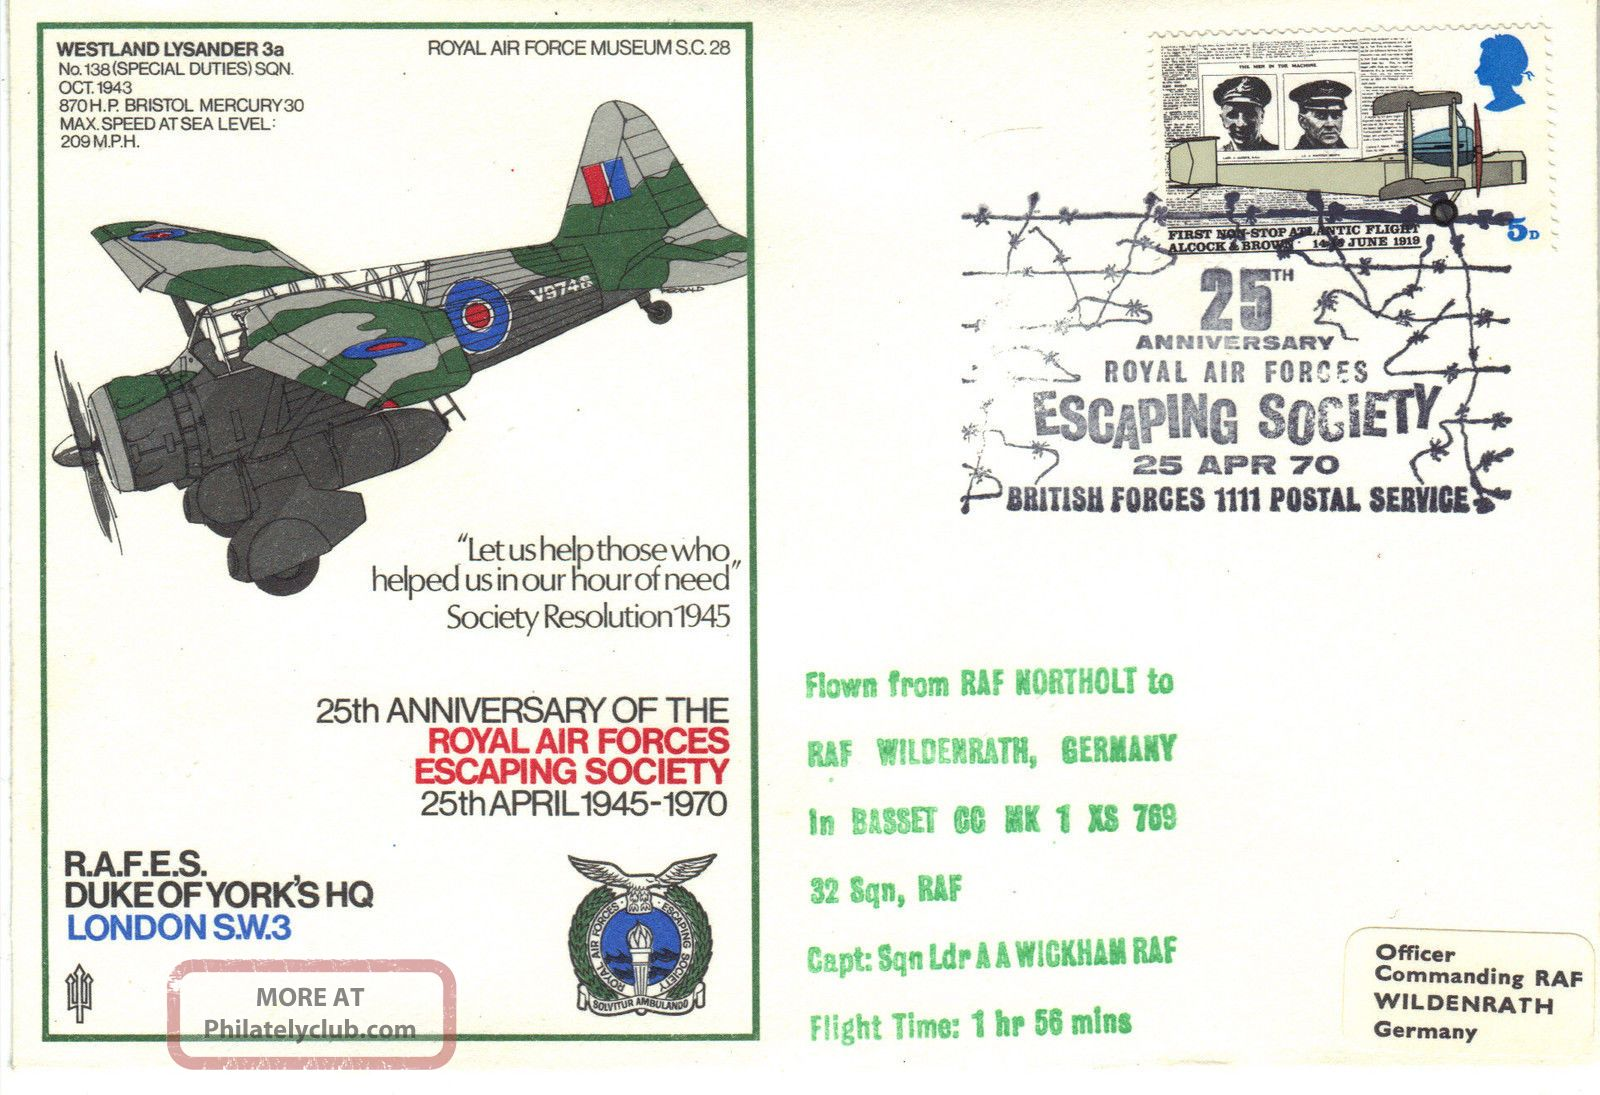 1970 Raf Sc28 25th Anniv Raf Escaping Society Duke Of Yorks Hq Cover Ref:fp41 Transportation photo